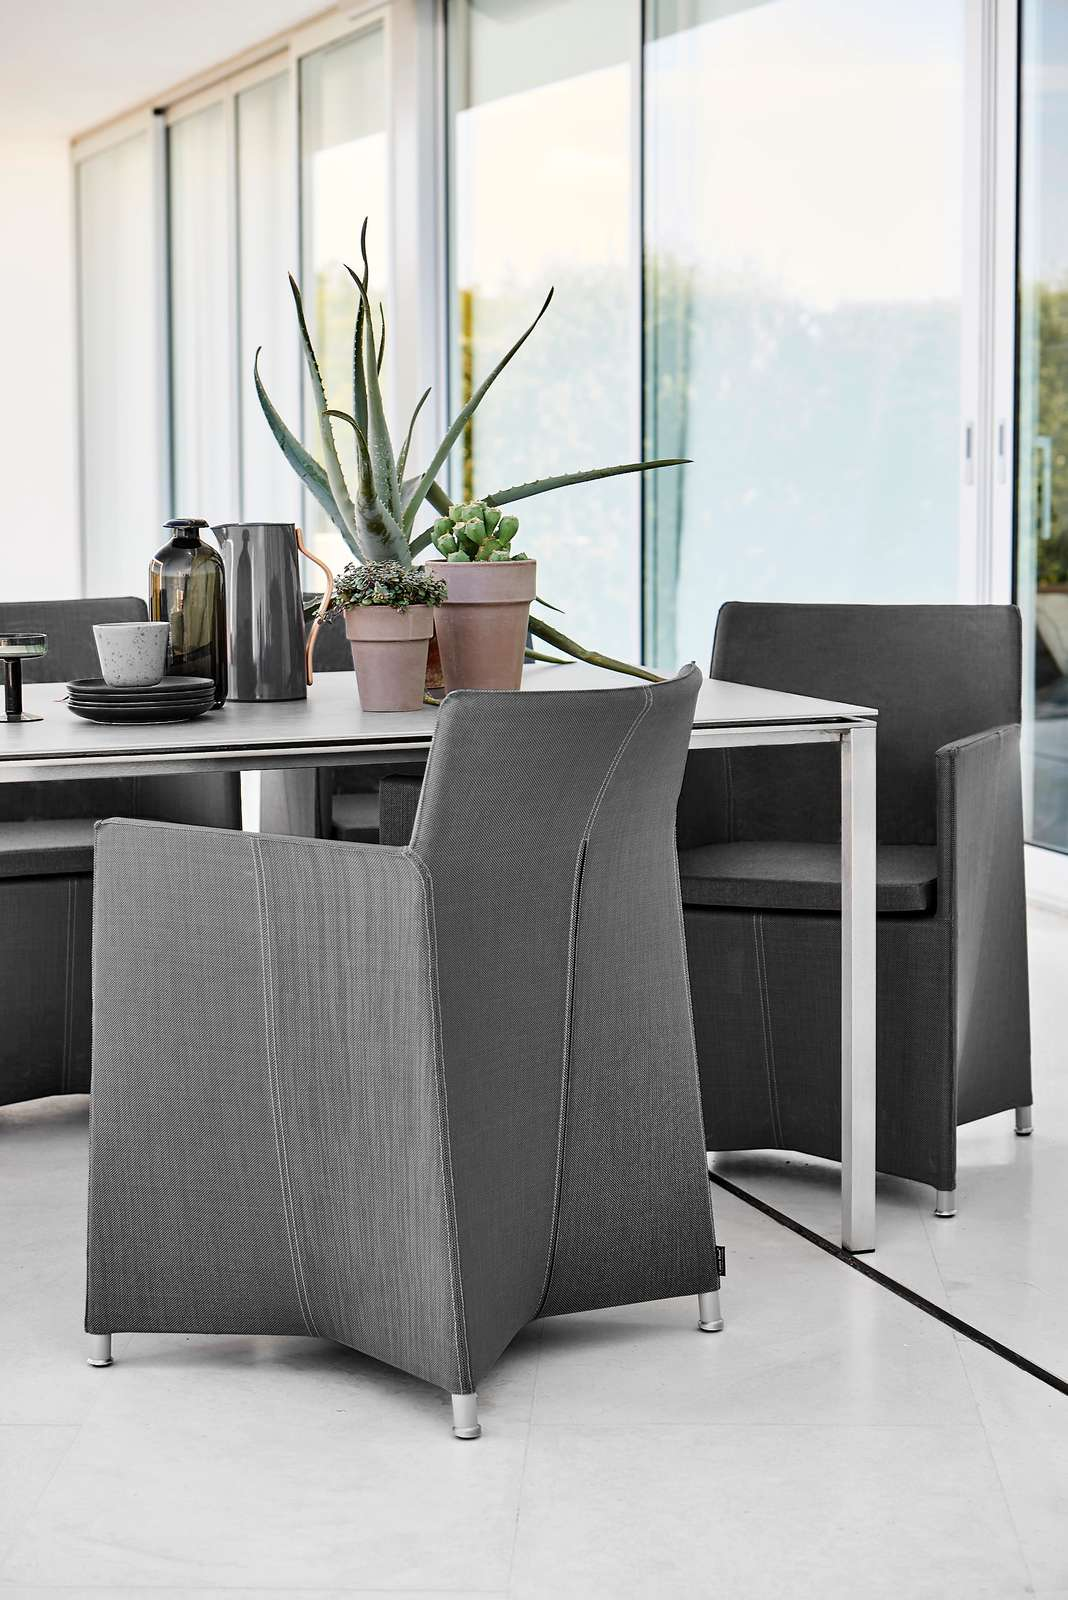 Diamond-chair-grey-Pure-table-stainless